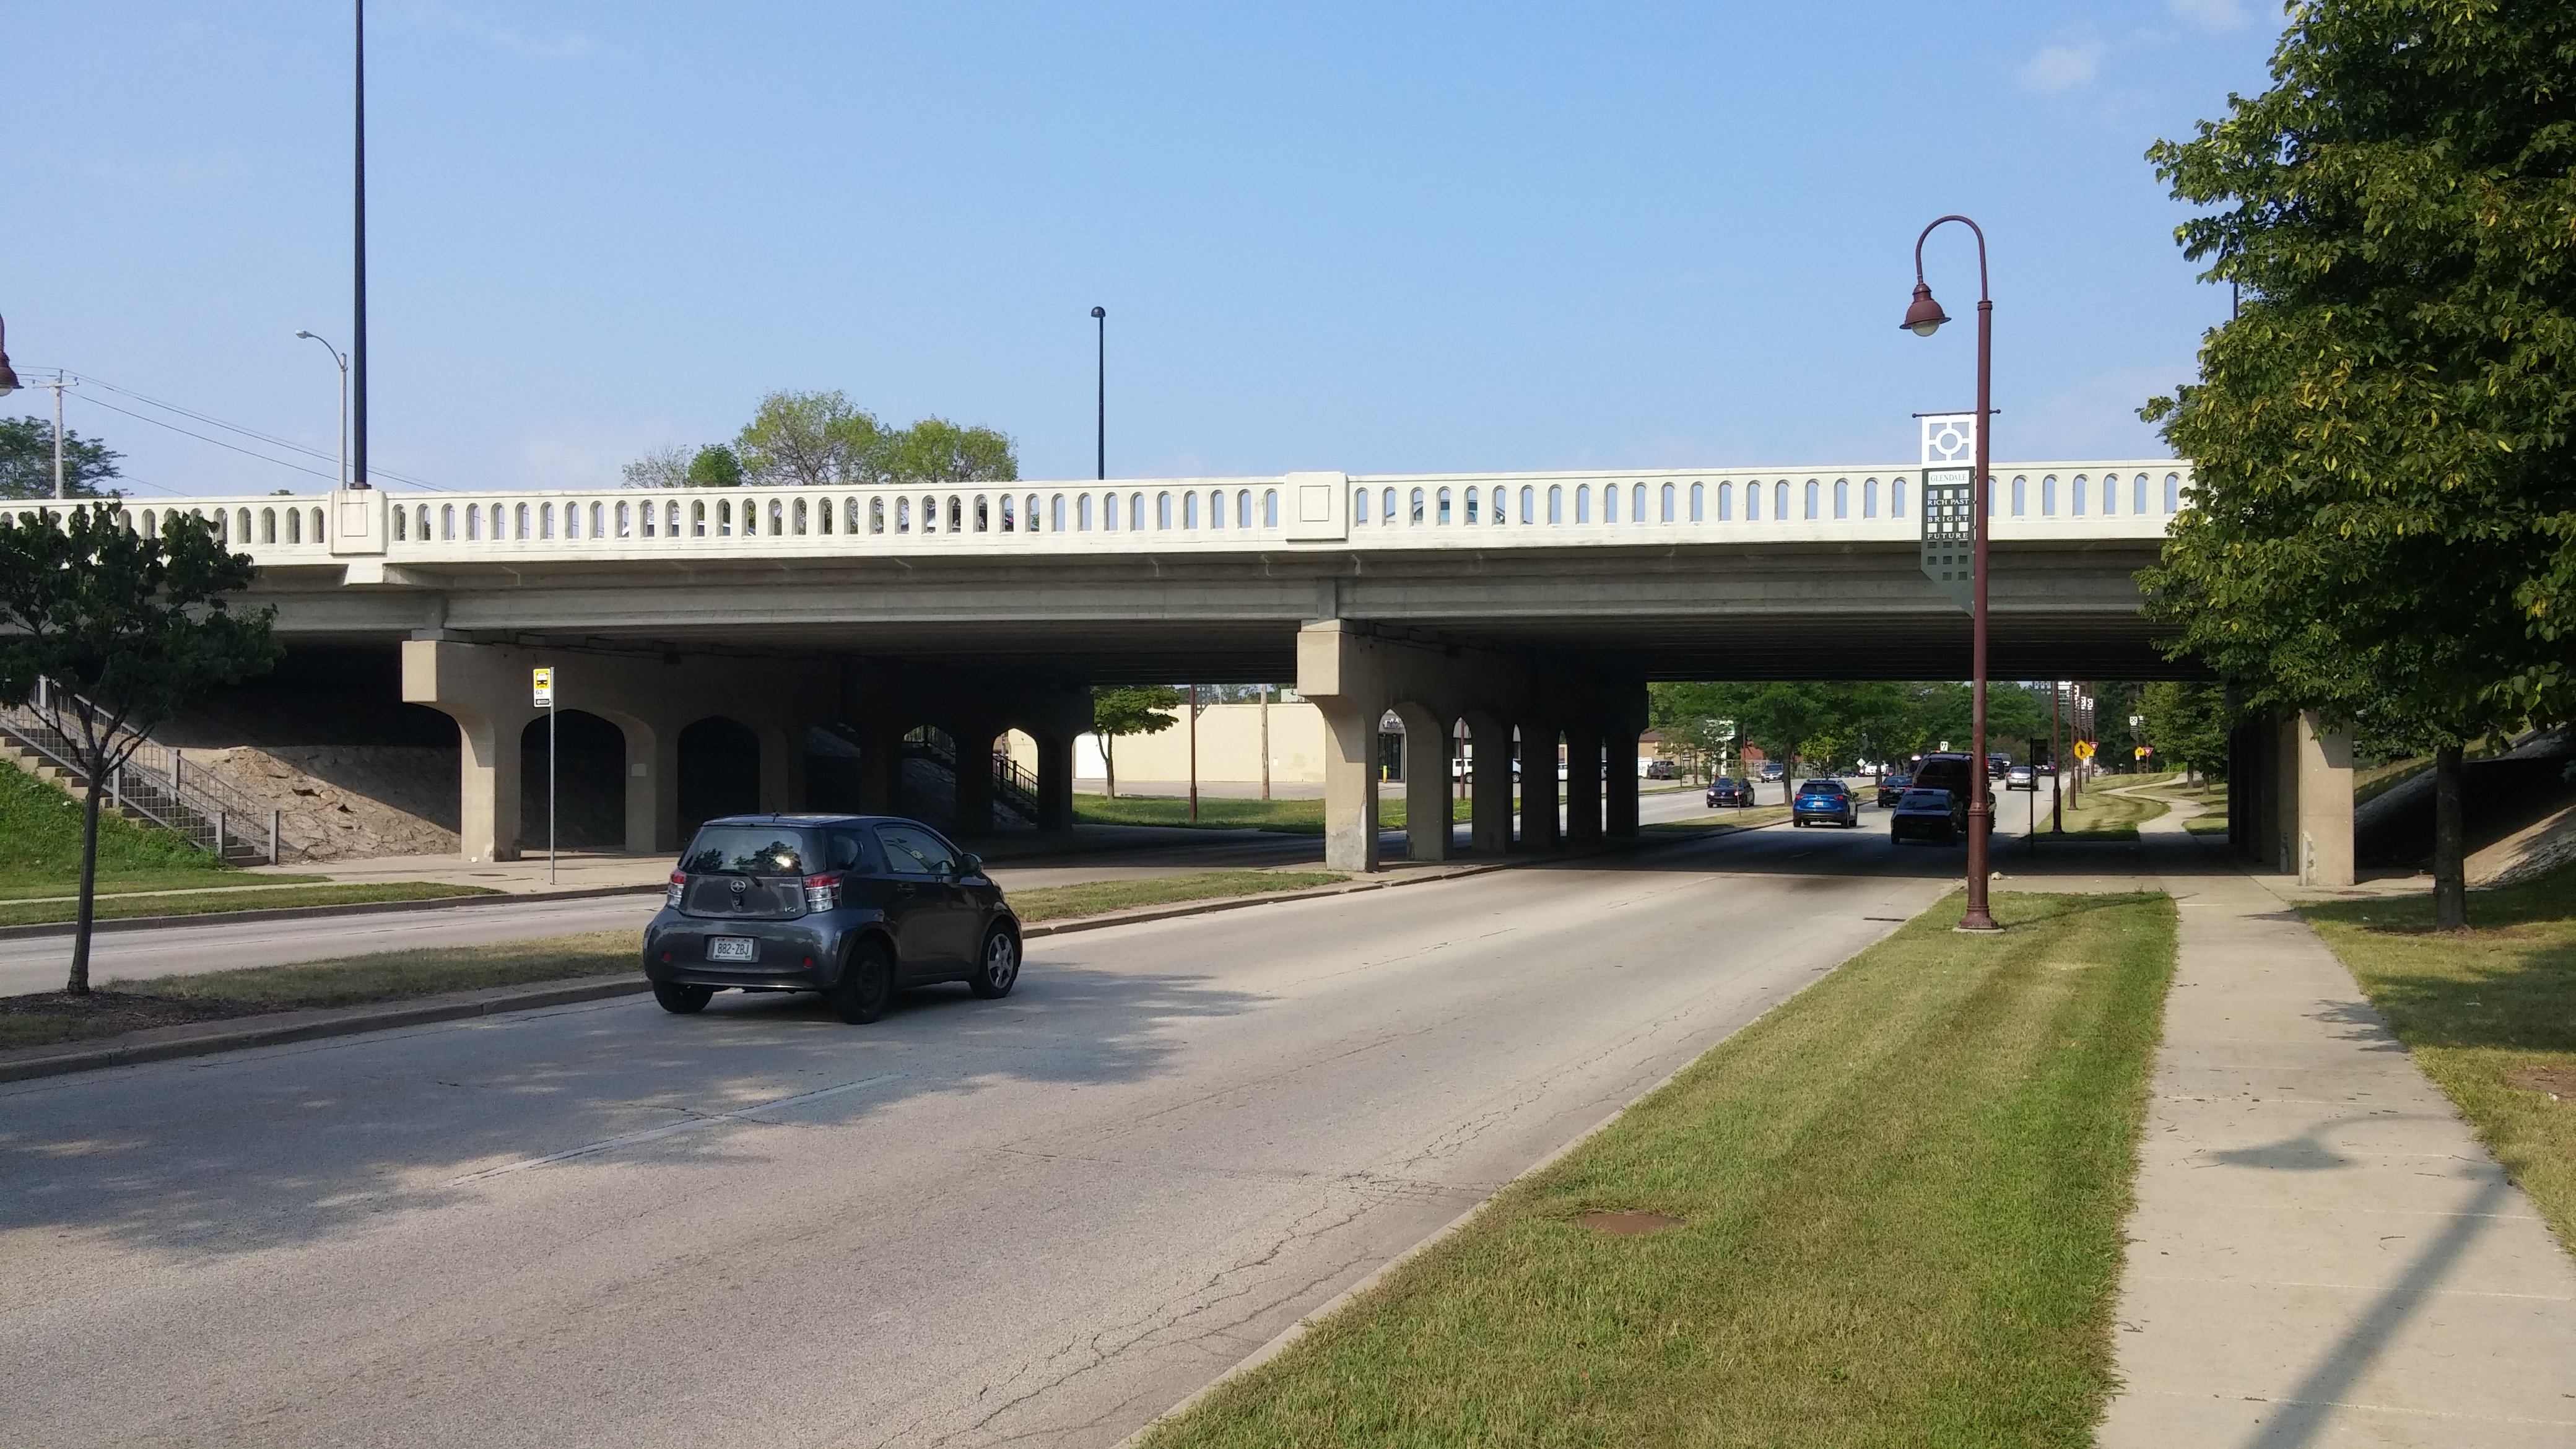 N. Green Bay Ave. now crosses above W. Silver Spring Dr. Photo by Carl Baehr.